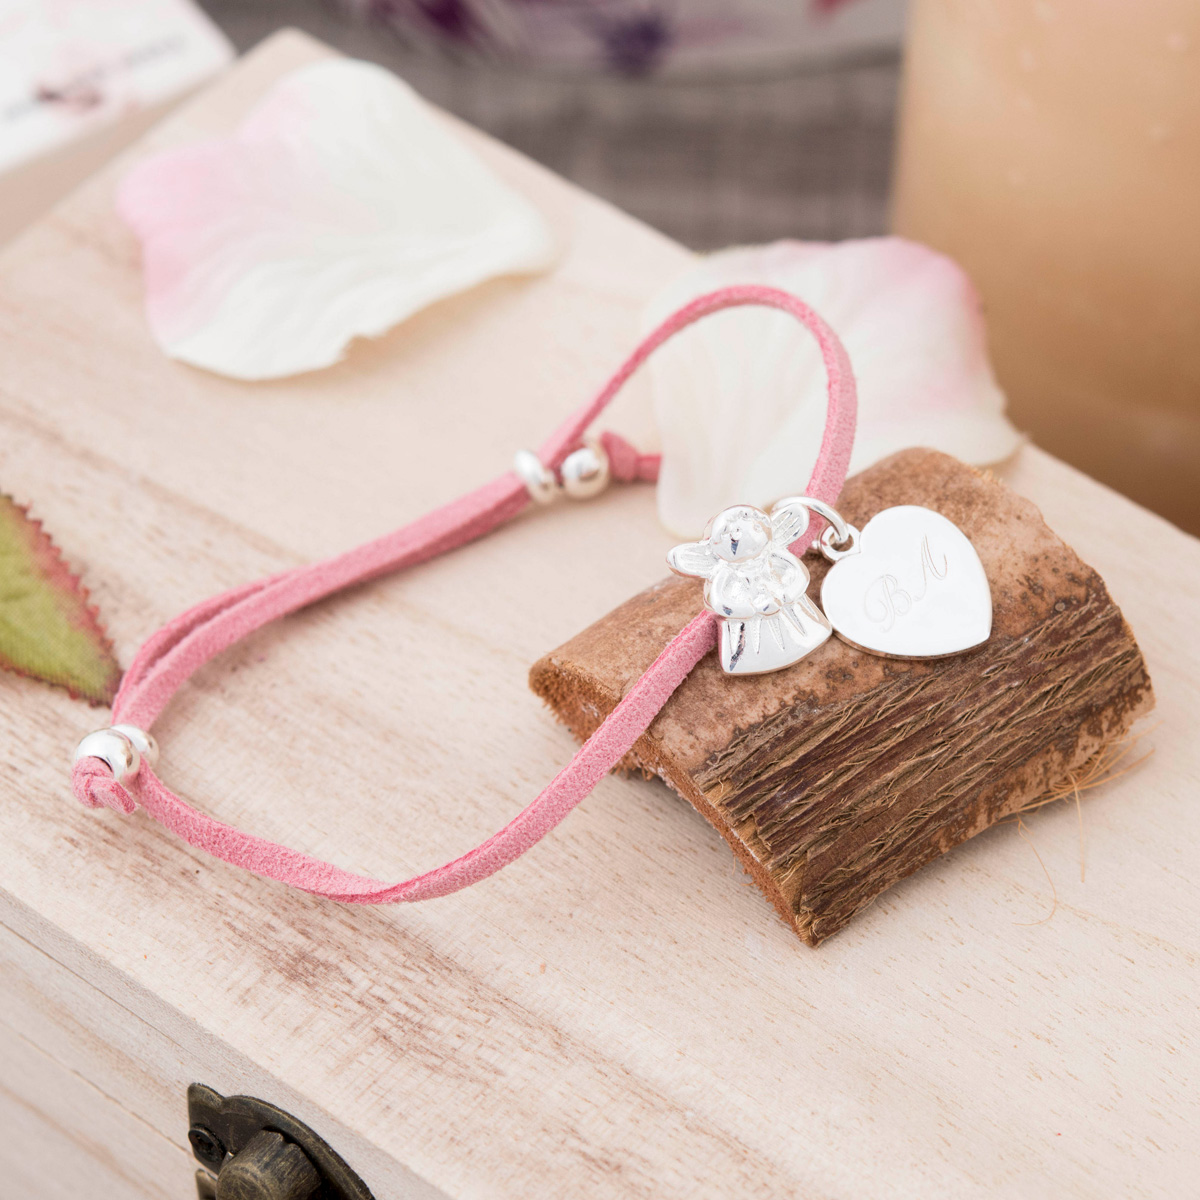 Engraved Suede Bracelet With Fairy & Heart  Choose From 3 Colours